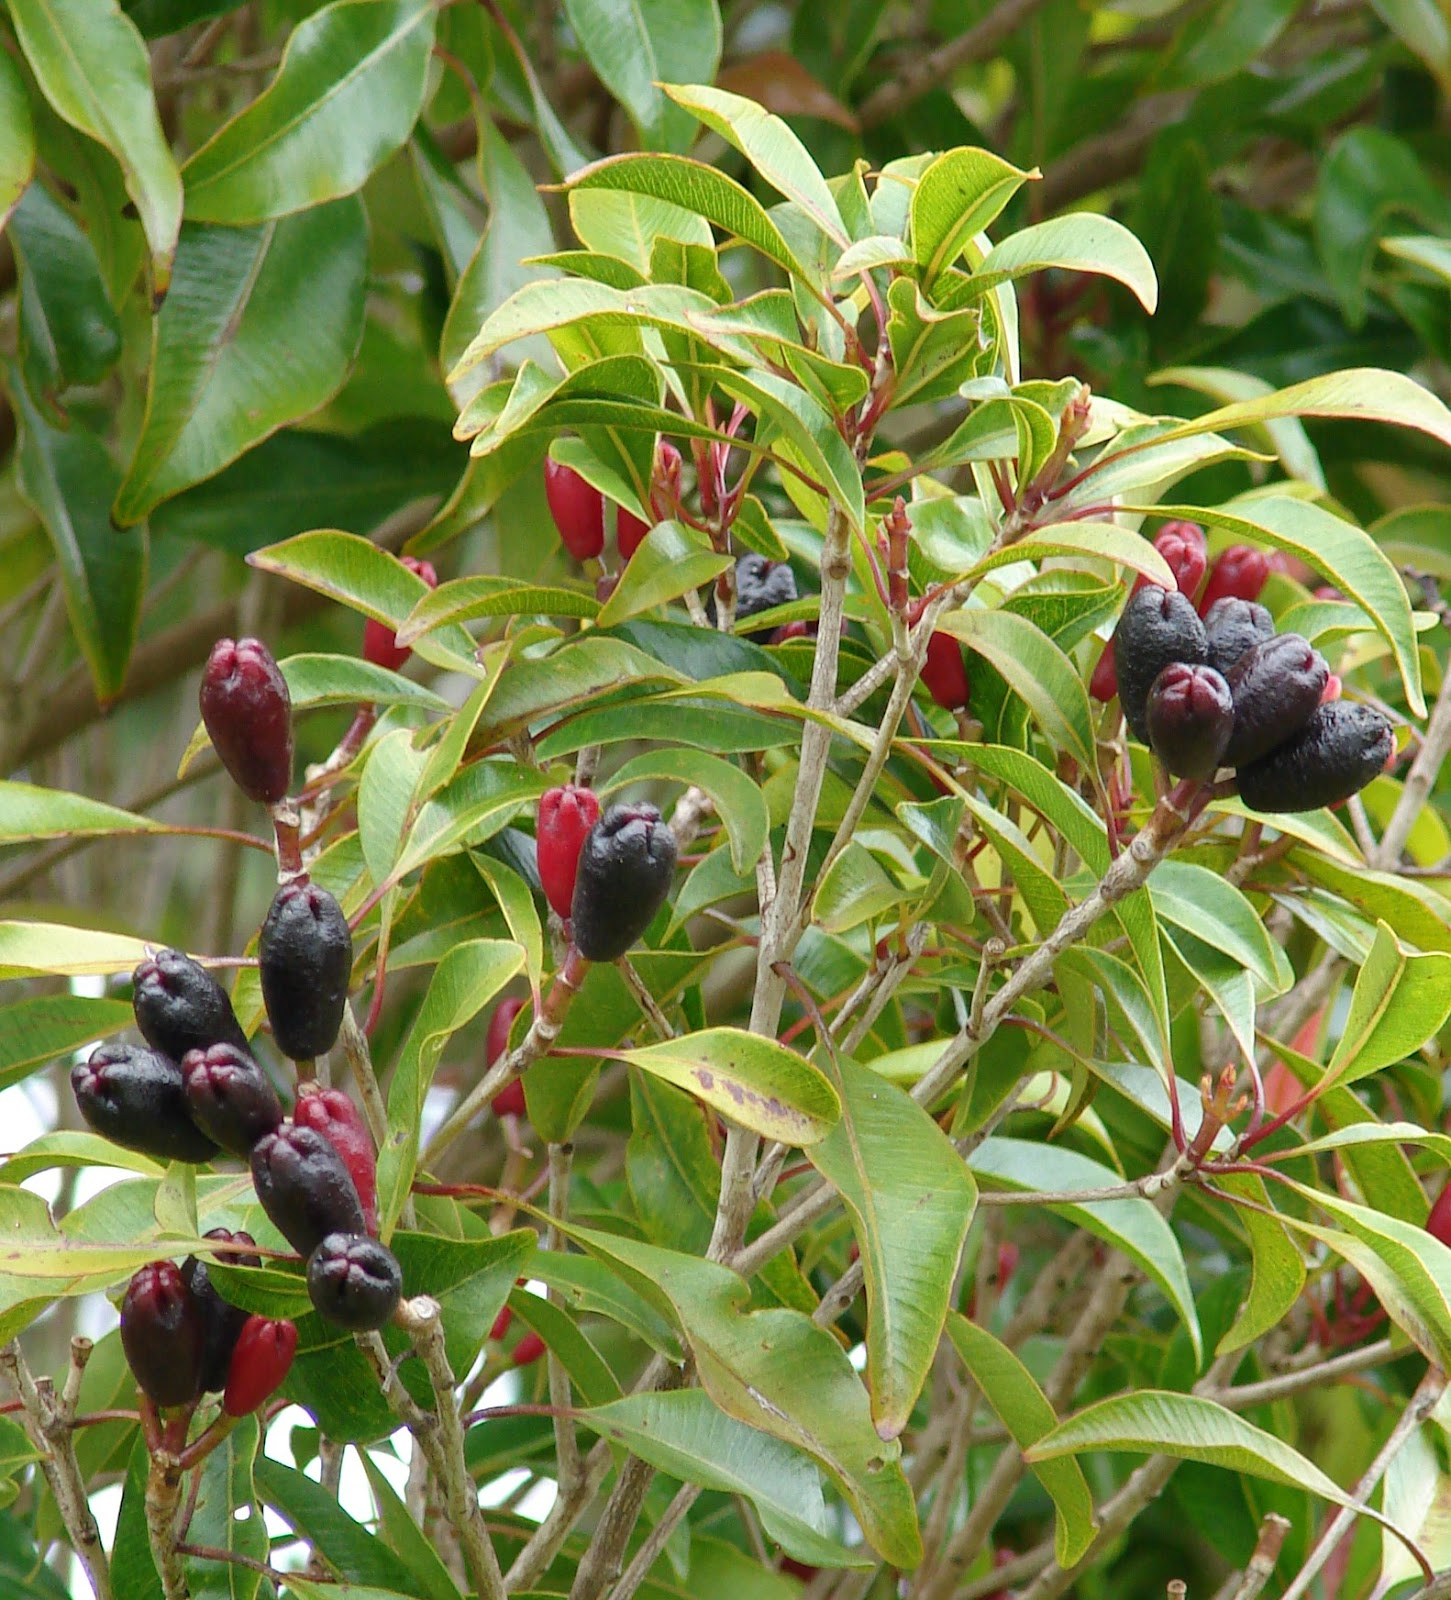 Whole cloves plant images galleries for Where did pi come from